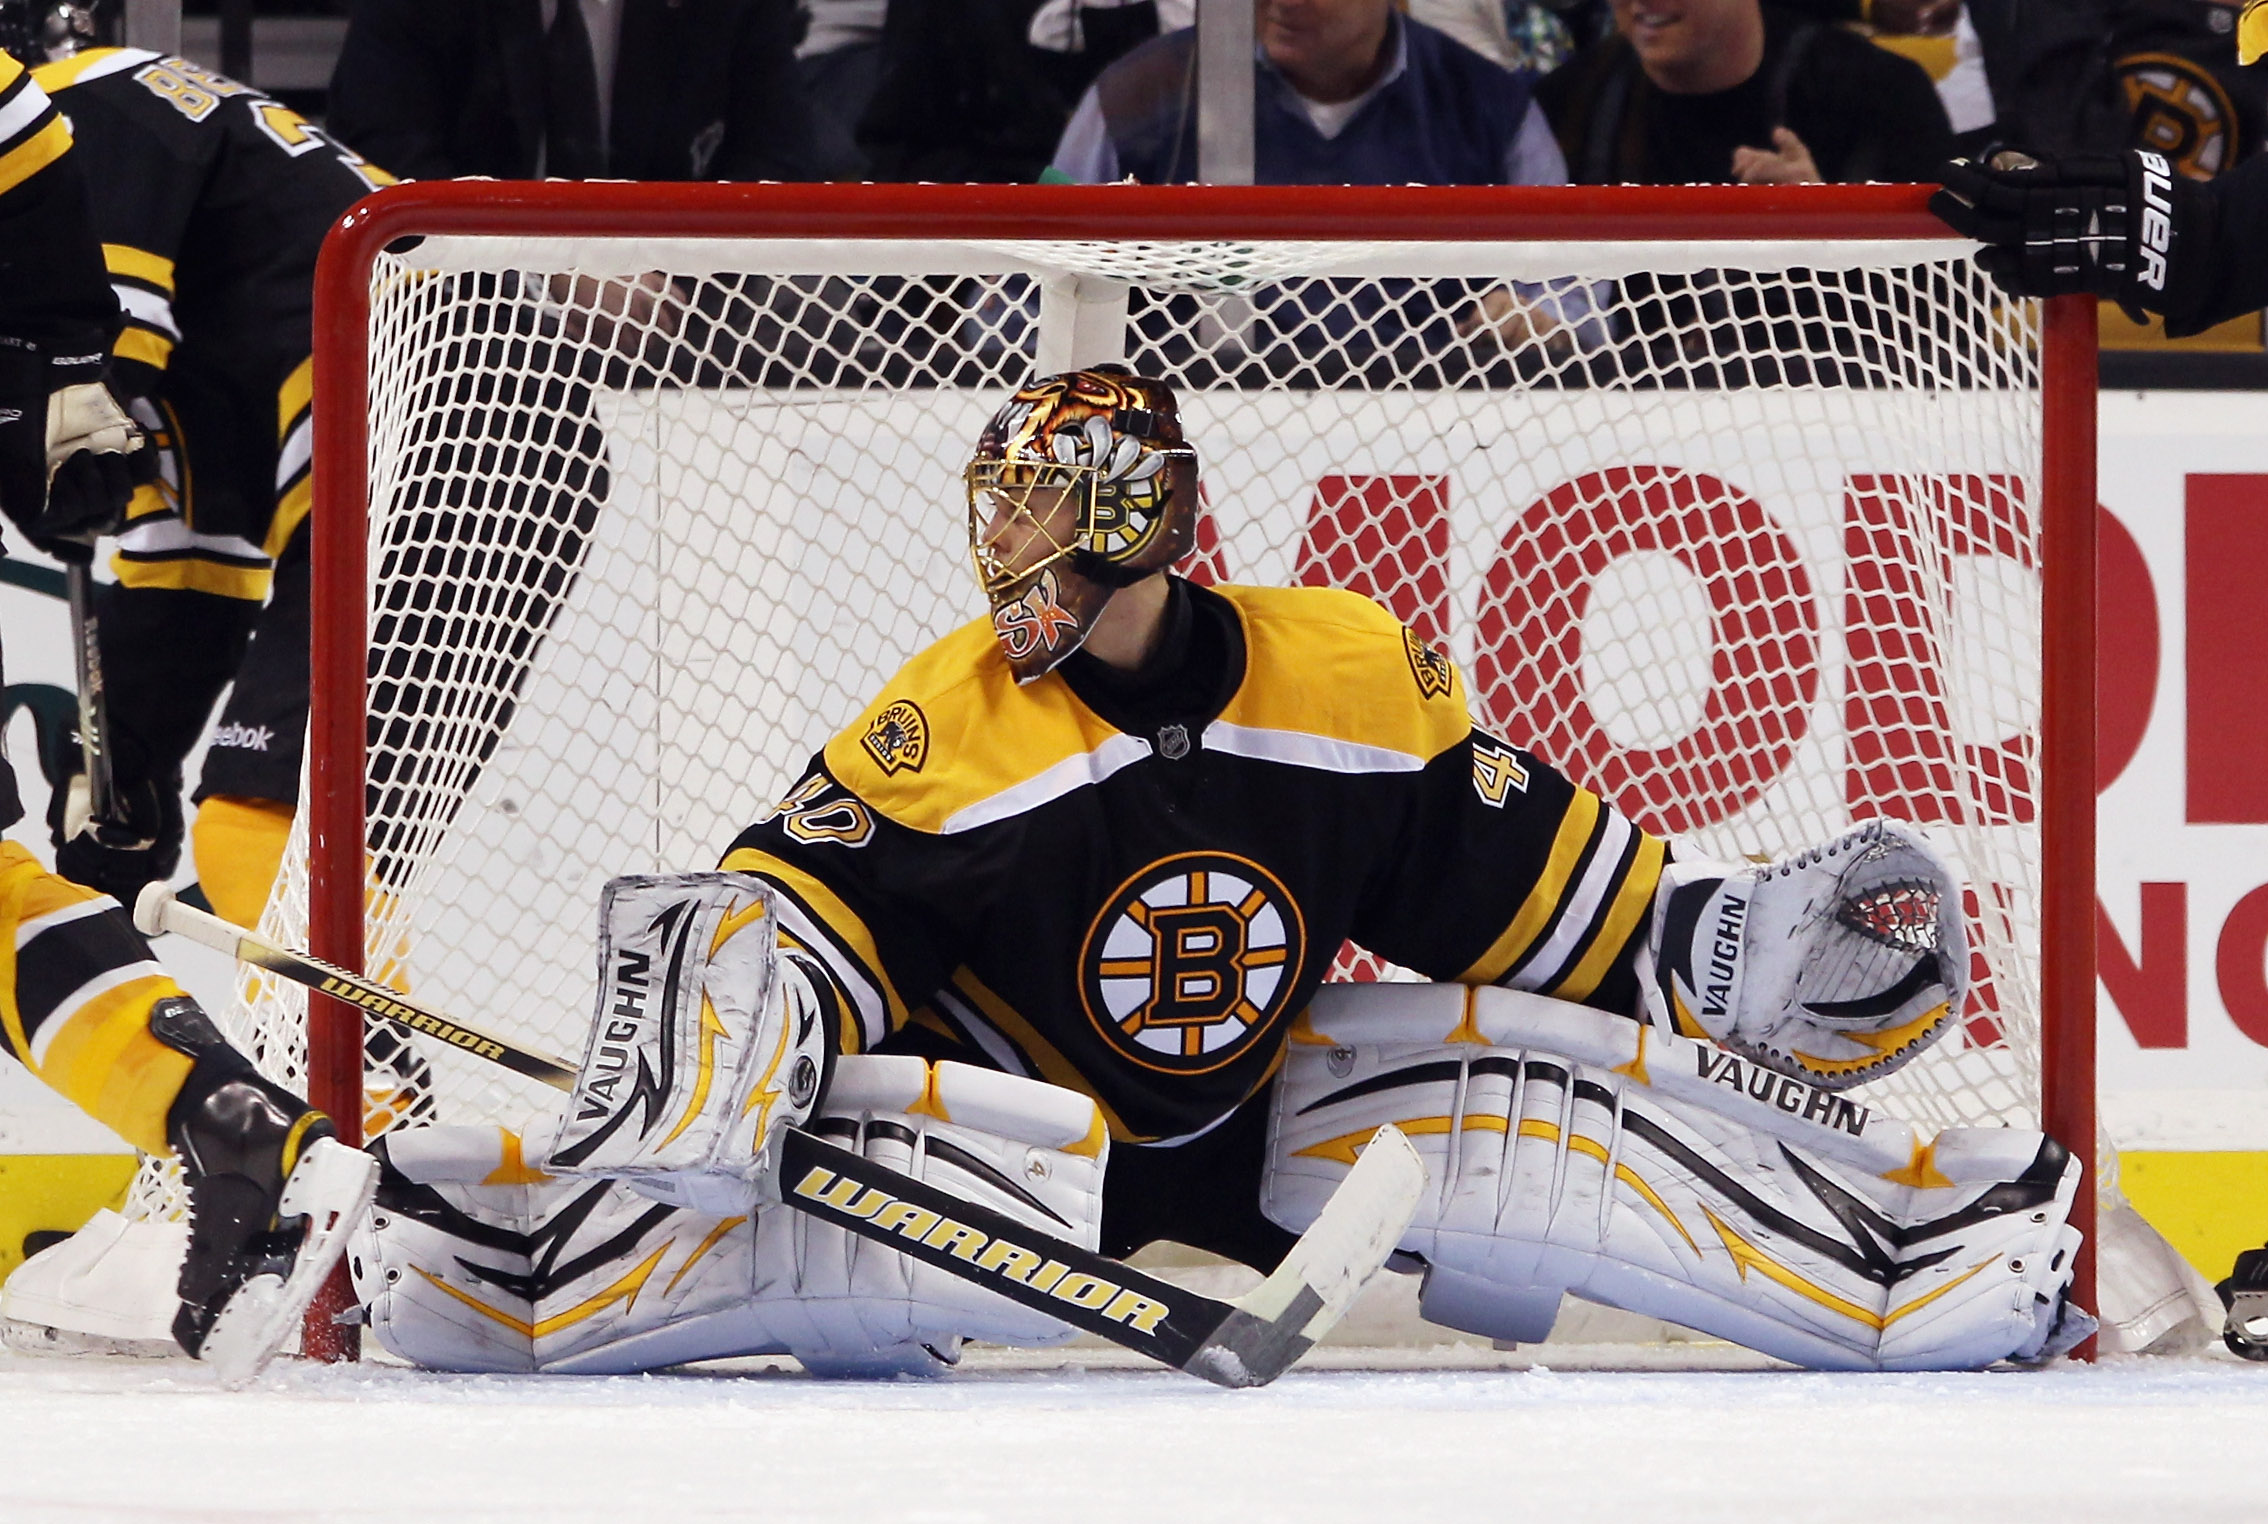 BOSTON - OCTOBER 23: Tuukka Rask #40 of the Boston Bruins spreads out to cover the net in his game against the New York Rangers at the TD Garden on October 23, 2010 in Boston, Massachusetts. The Rangers defeated the Bruins 3-2. (Photo by Bruce Bennett/Get